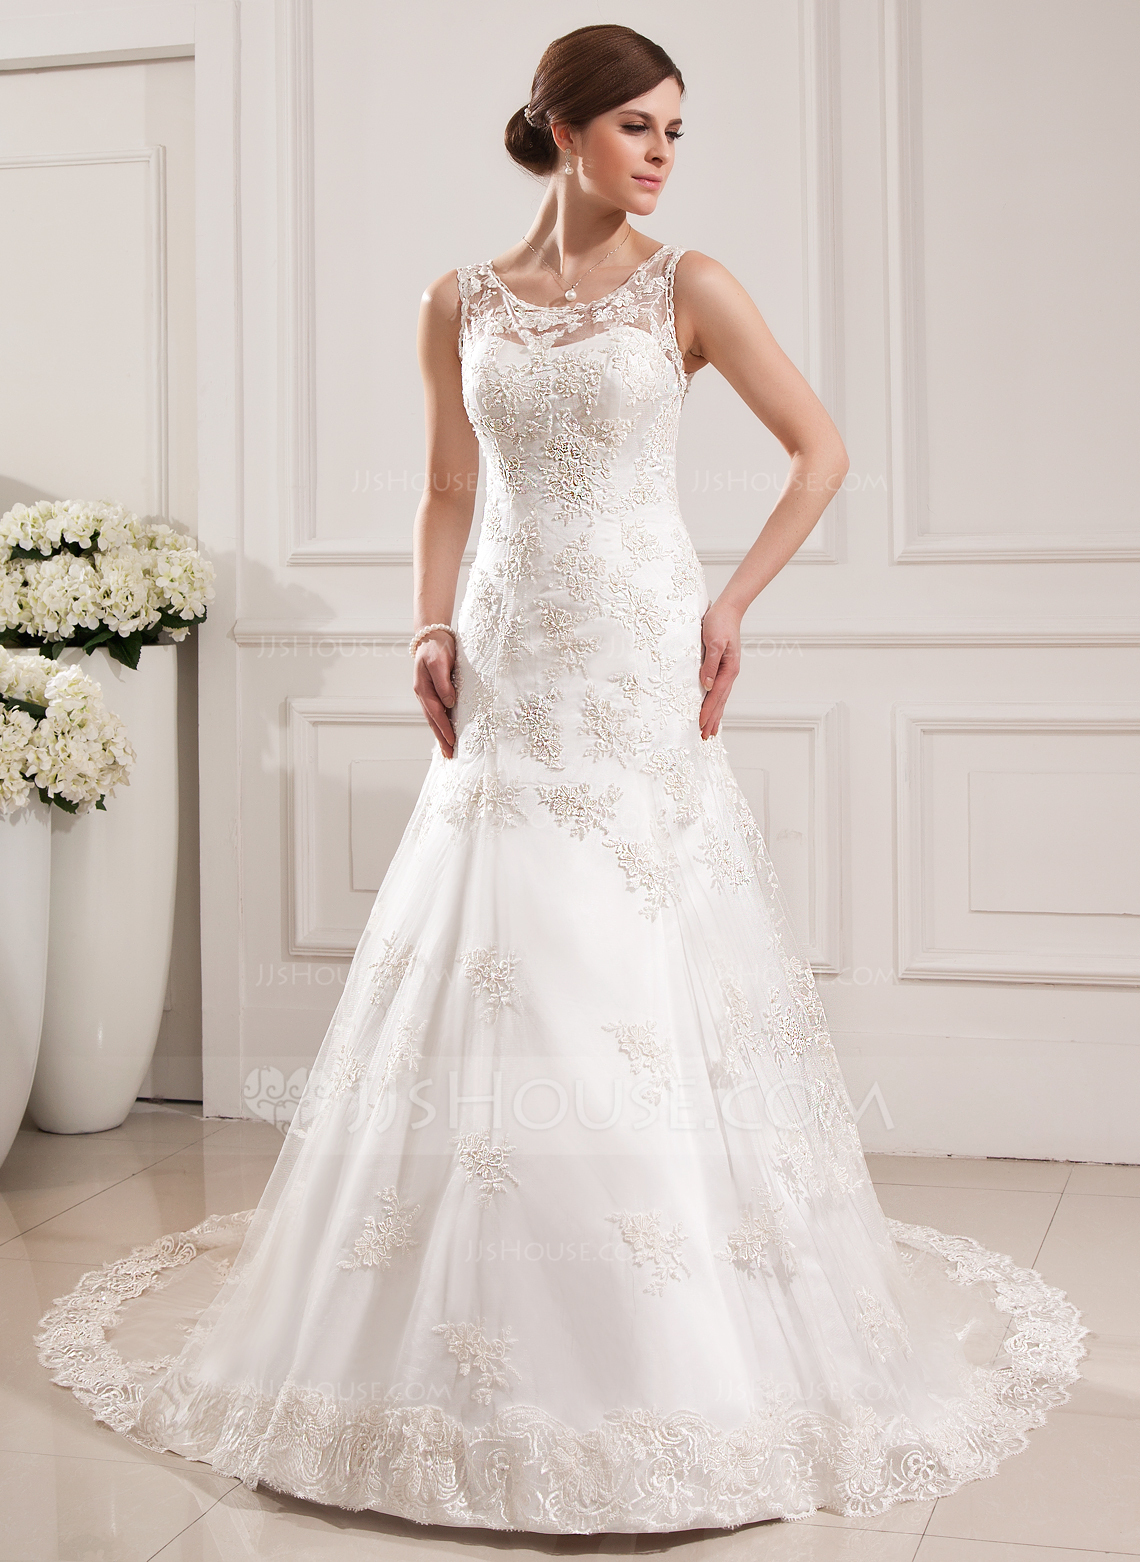 Trumpet Mermaid Scoop Neck Cathedral Train Tulle Wedding Dress With Appliques Lace g jjs house wedding dresses Home Wedding Dresses Loading zoom